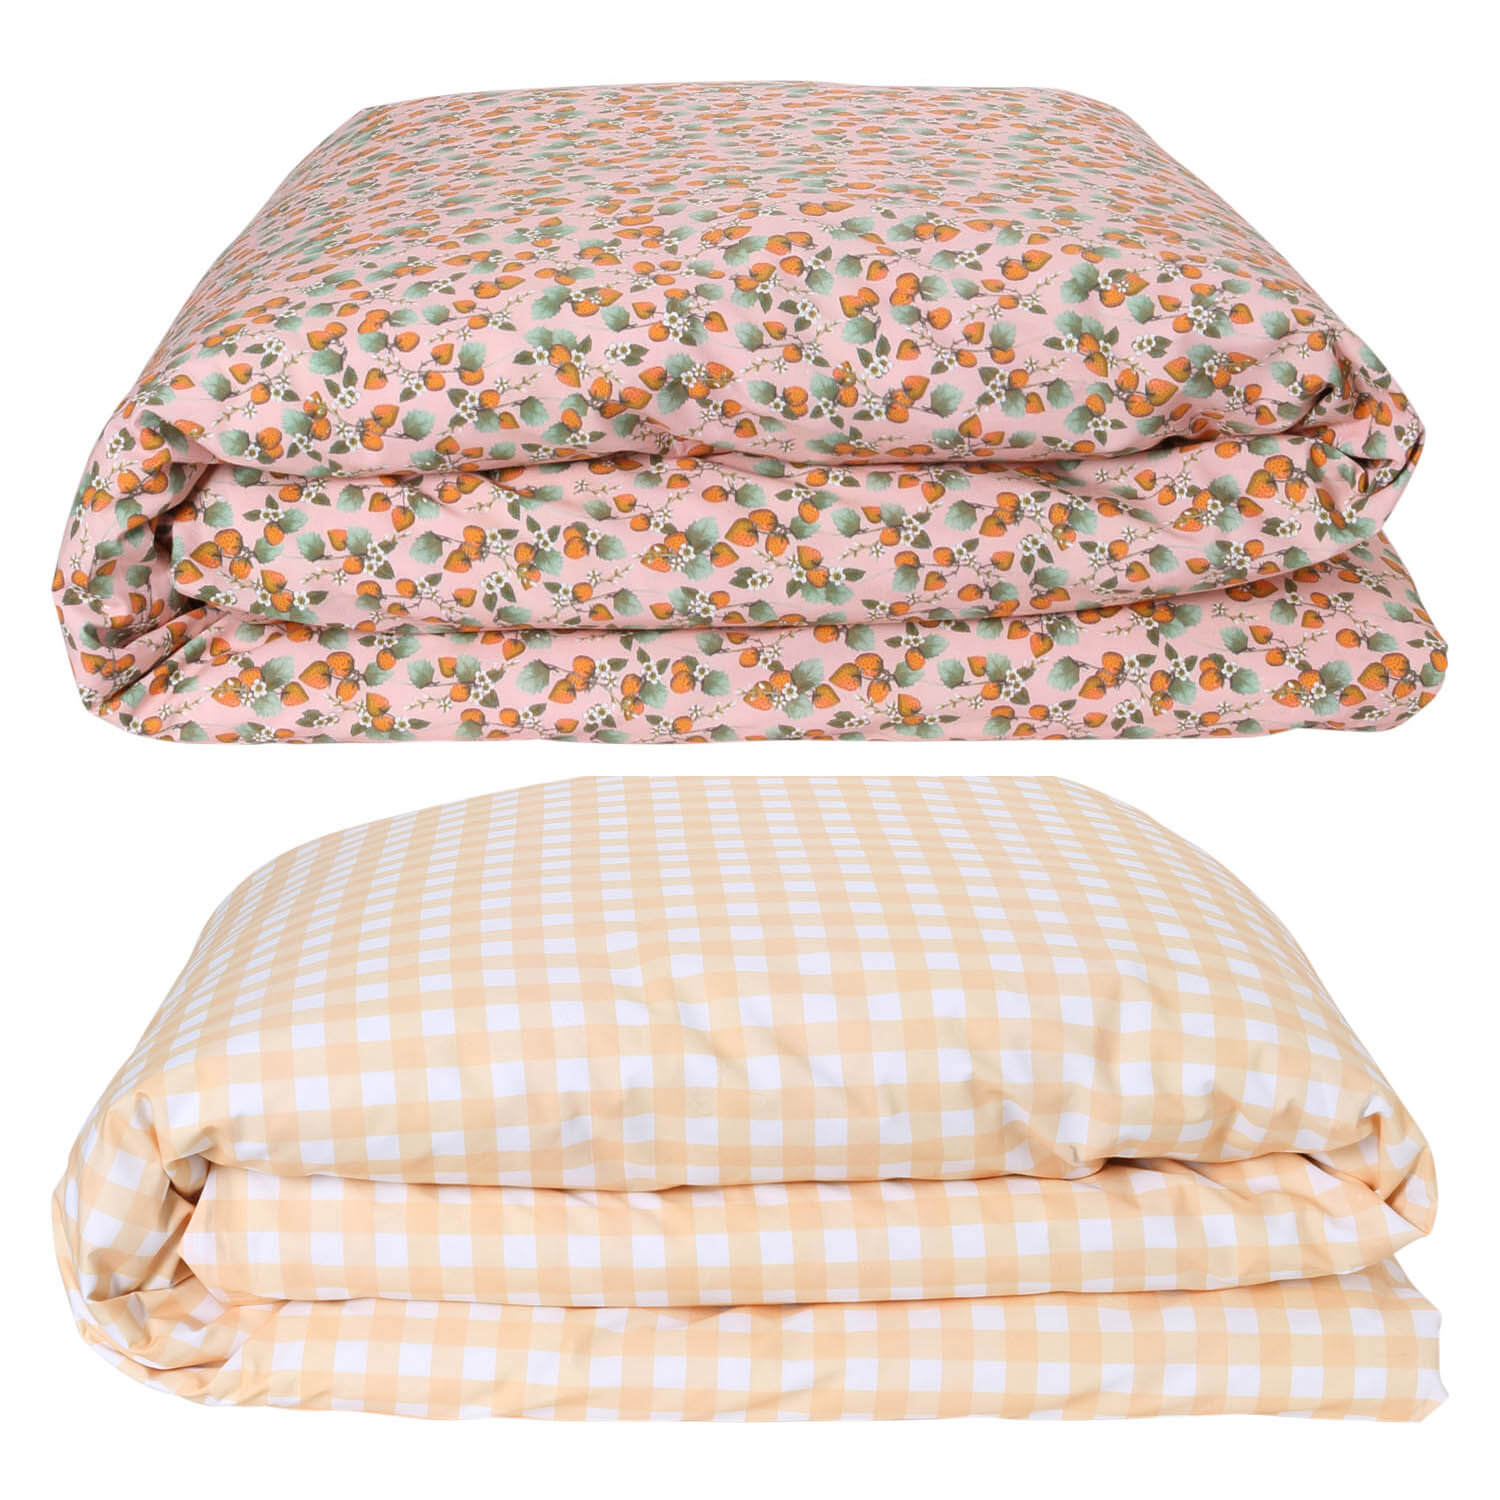 Kip and co the patch peach reversible gingham quilt cover | My House Loves